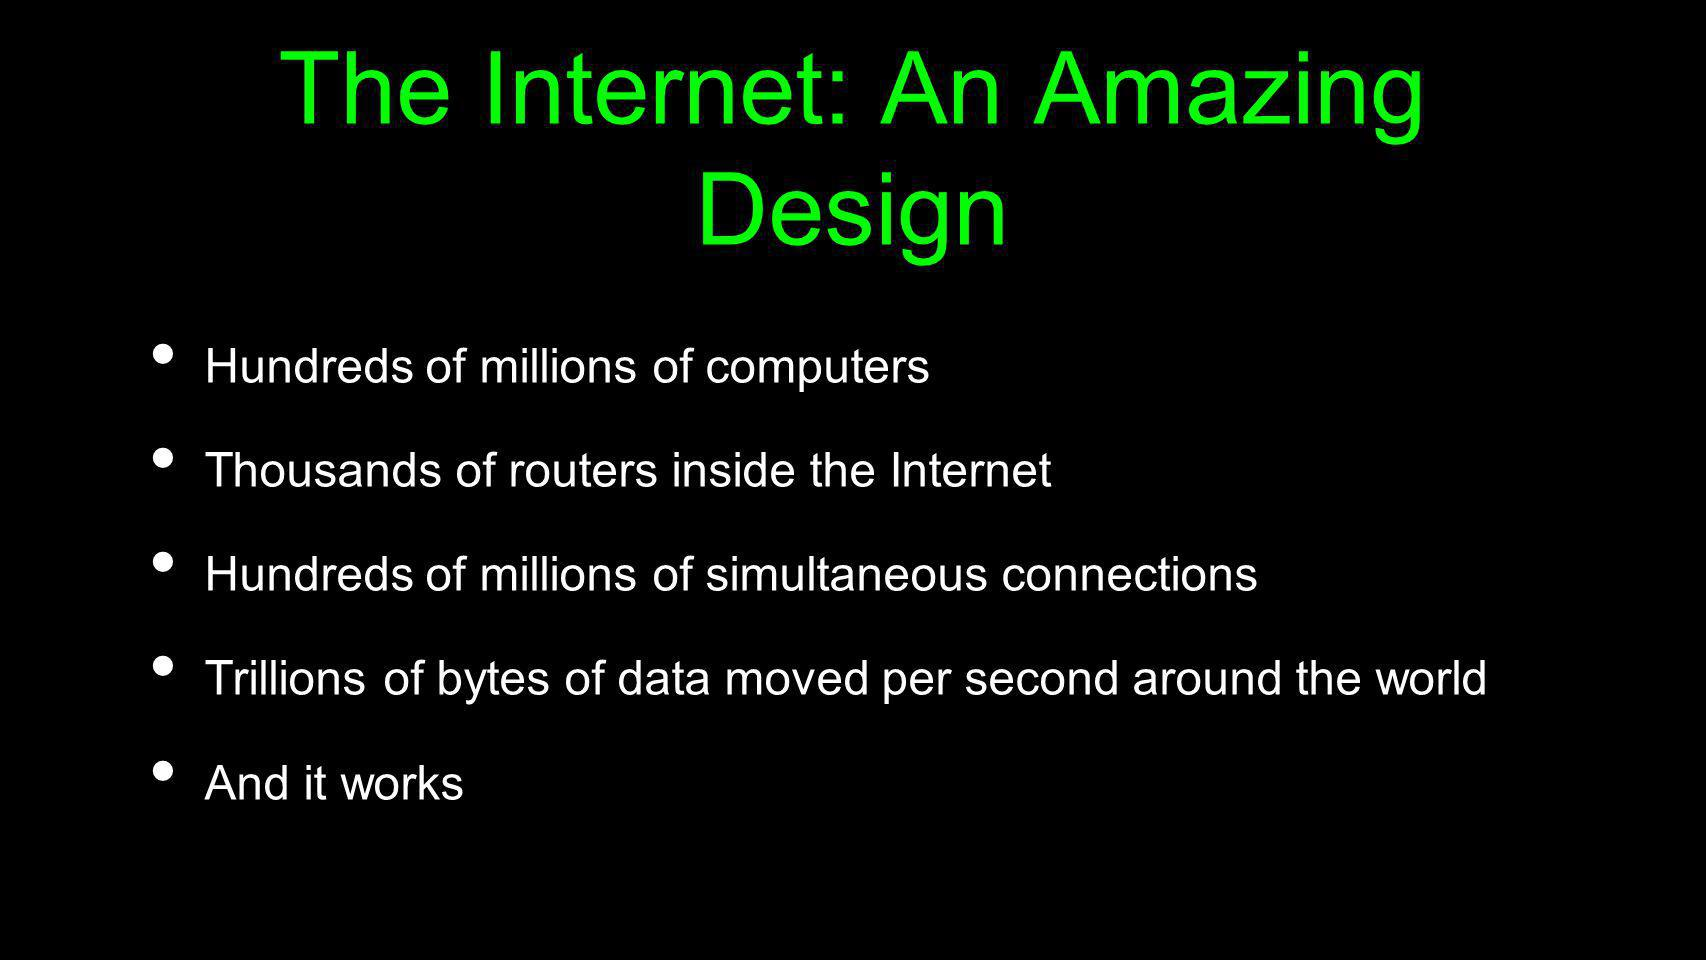 The Internet: An Amazing Design